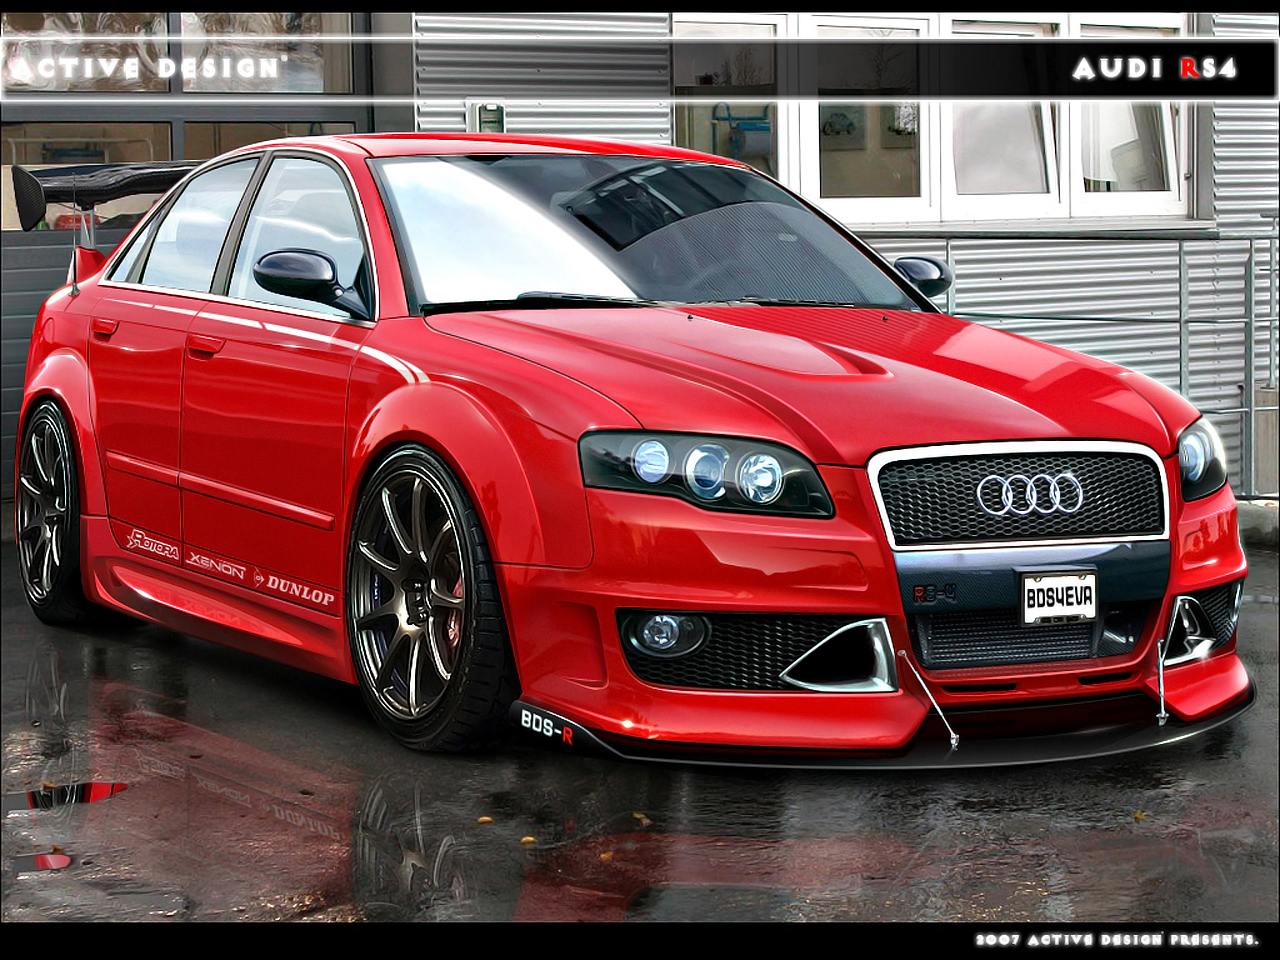 audi rs4 technical details history photos on better parts ltd. Black Bedroom Furniture Sets. Home Design Ideas